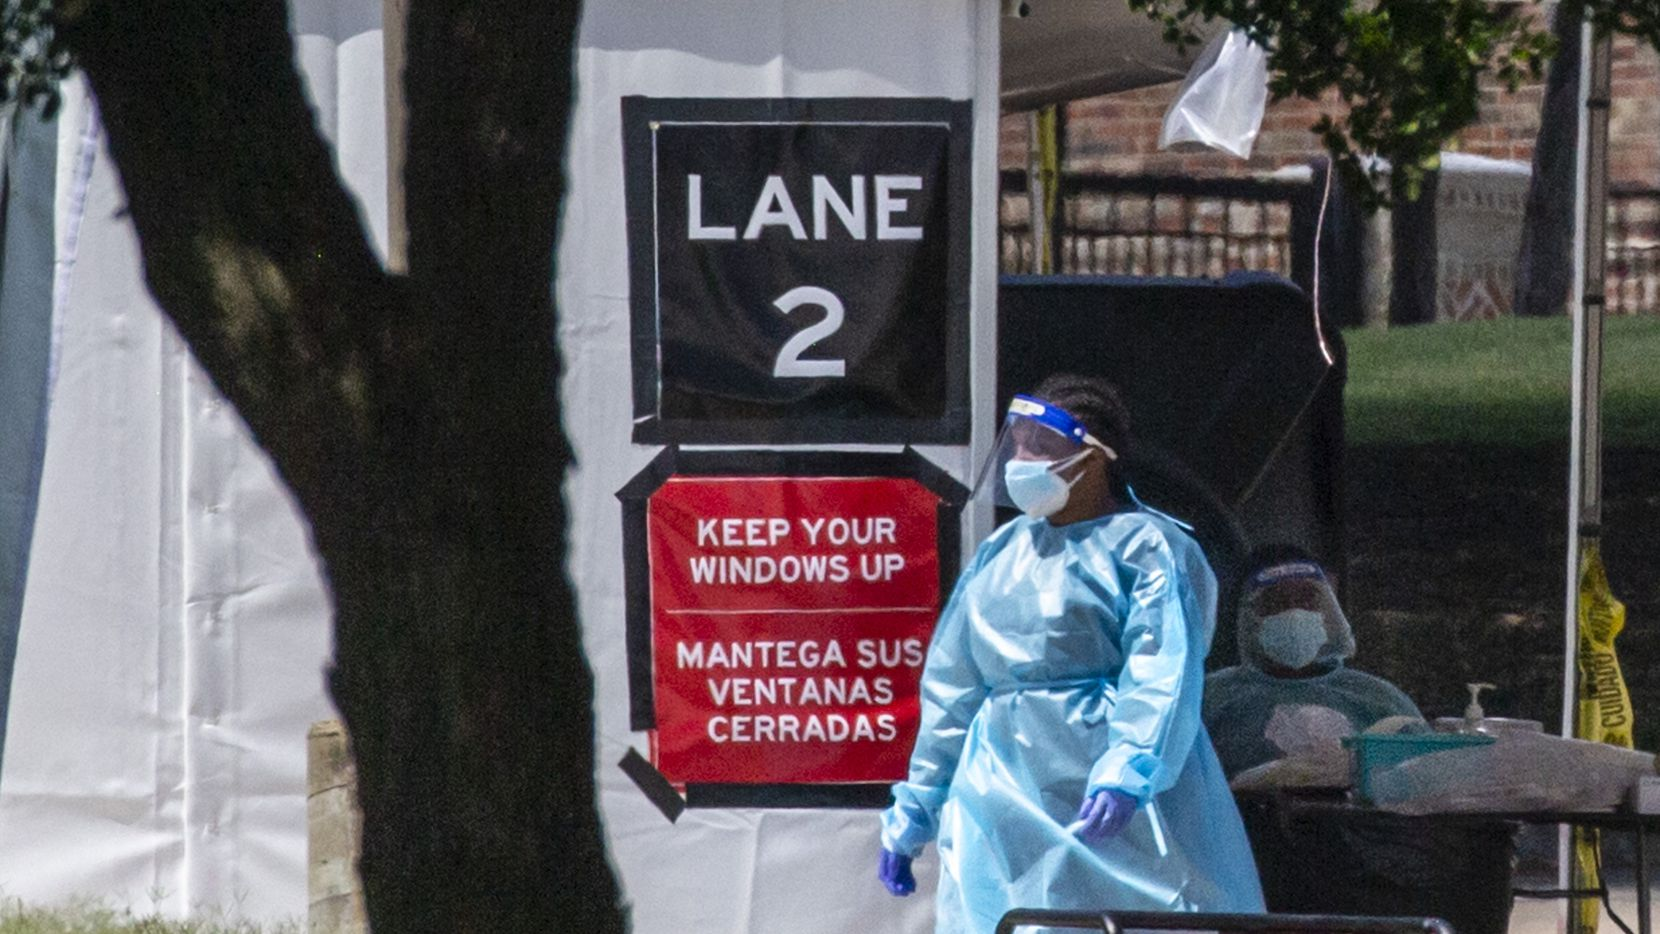 Medical personnel wait for visitors to arrive at the drive-thru COVID-19 testing site located at the University of Dallas campus in Dallas on Friday, July 9, 2020.